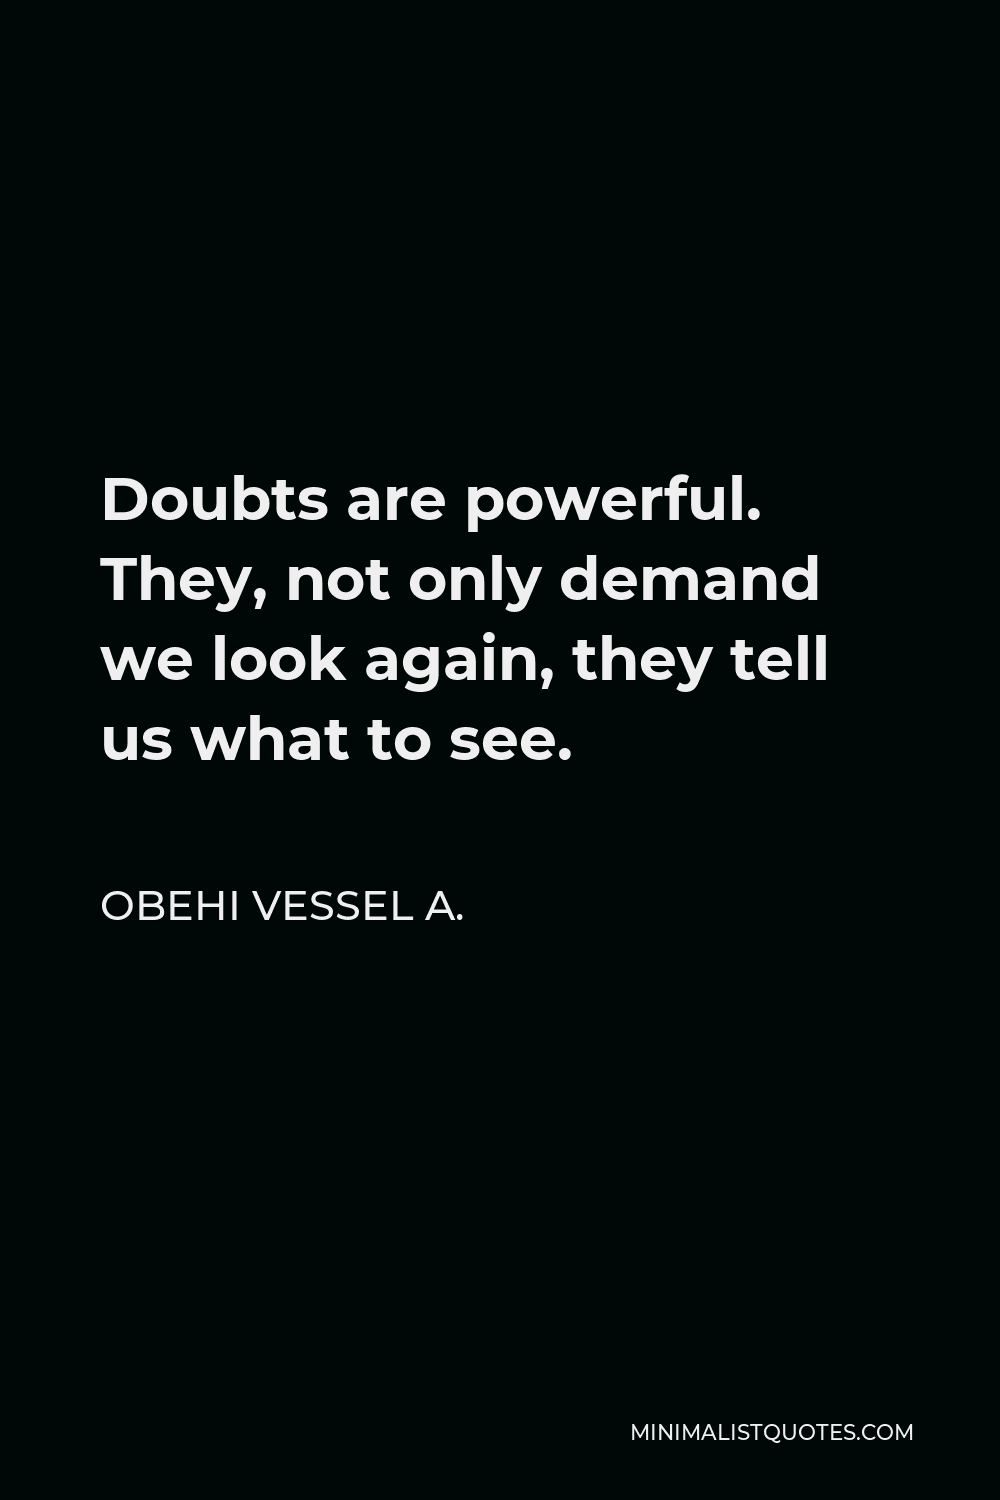 Obehi Vessel A. Quote - Doubts are powerful. They, not only demand we look again, they tell us what to see.